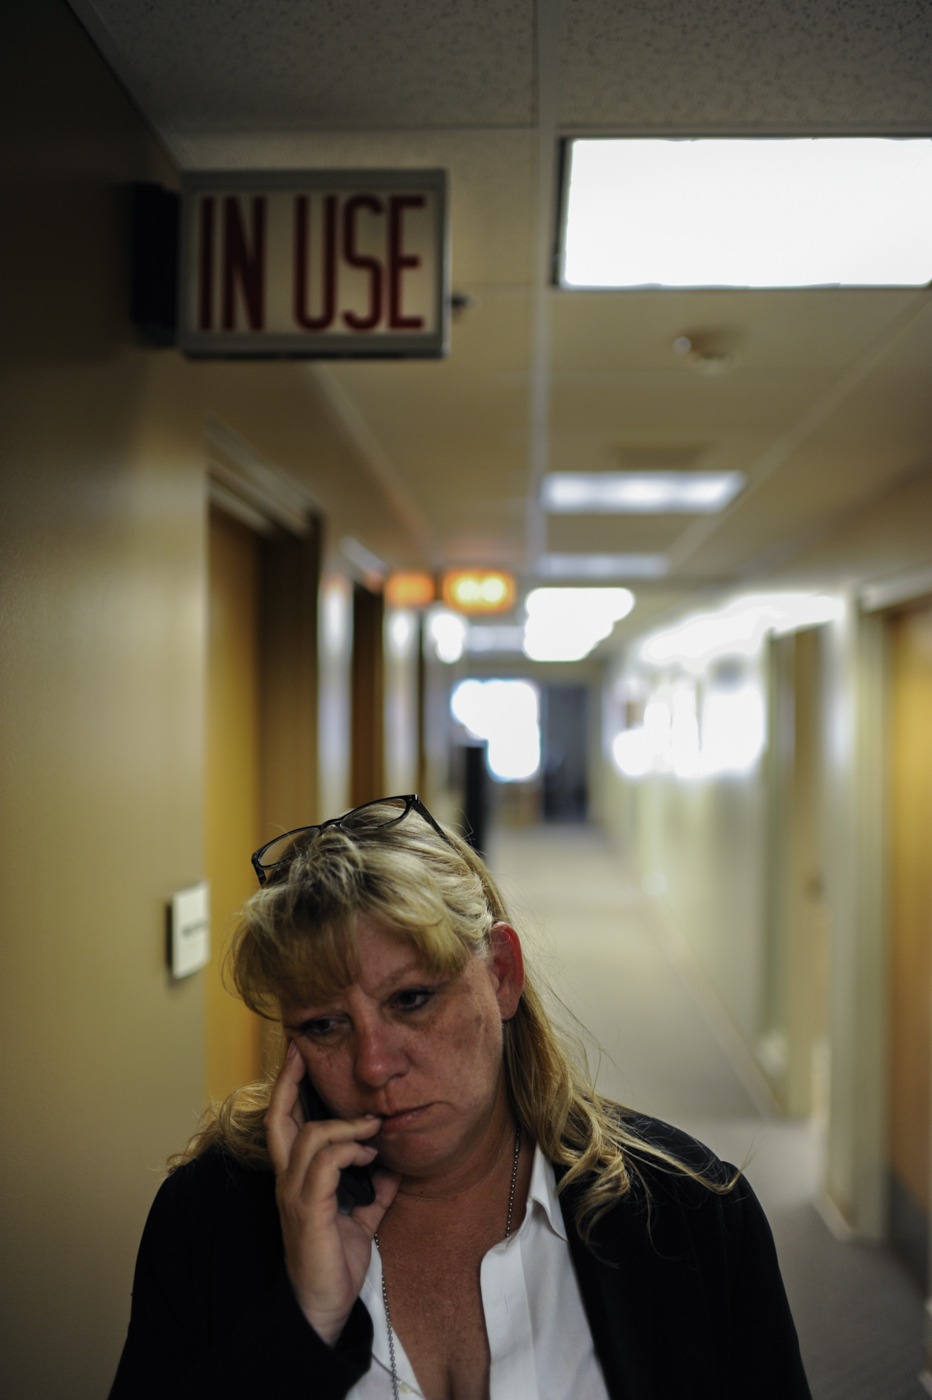 Passing the suspect interview rooms in the Platte County Sheriff's station, detective Nancy Penrod calls home.